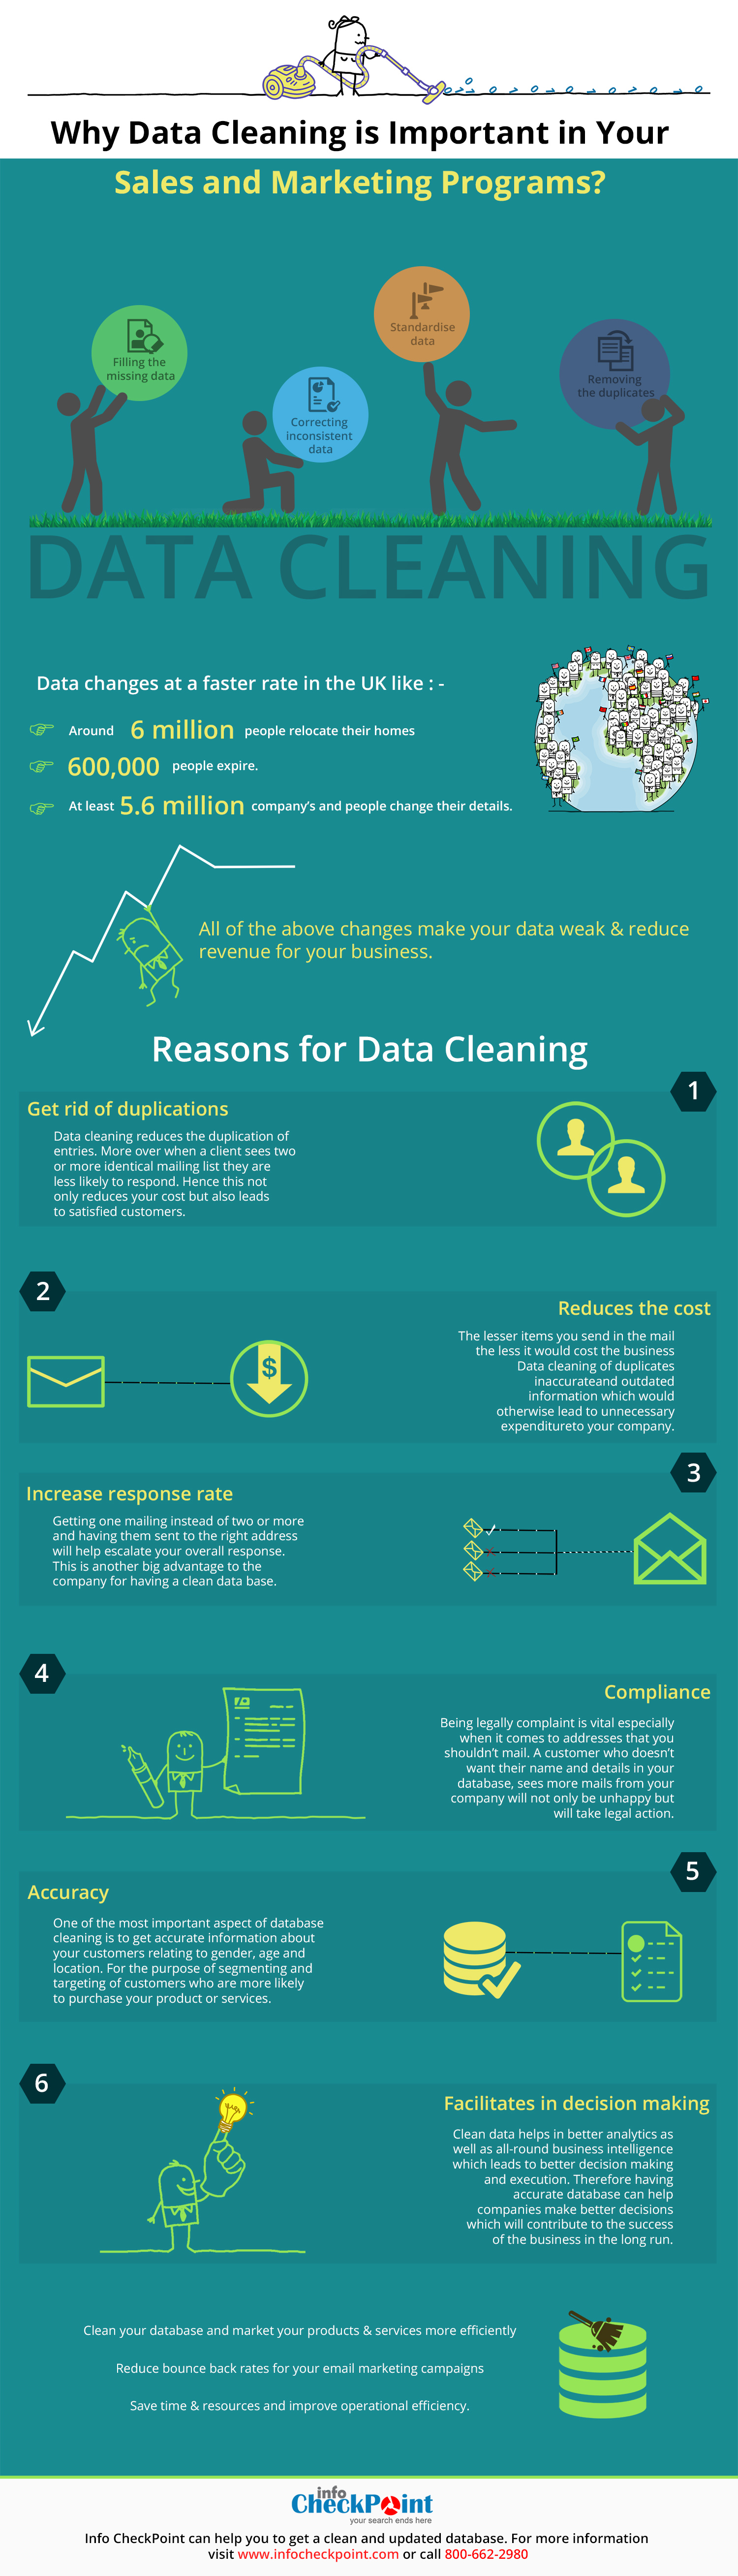 Data Cleaning for Business